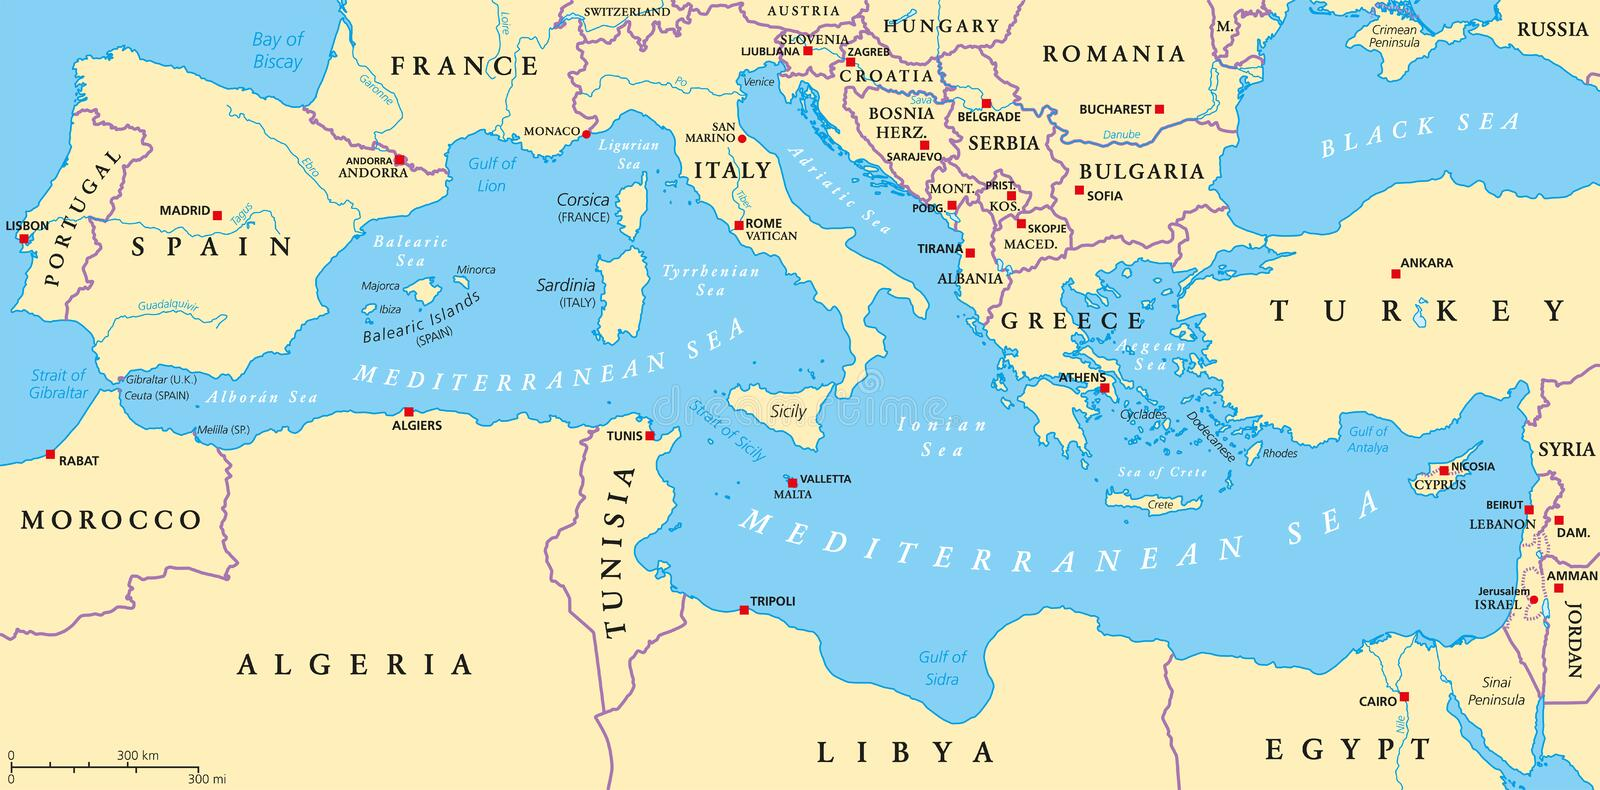 Mediterranean Sea Region Political Map. Region of lands around the Mediterranean Sea. South Europe, North Africa and Near East with capitals, national borders royalty free illustration